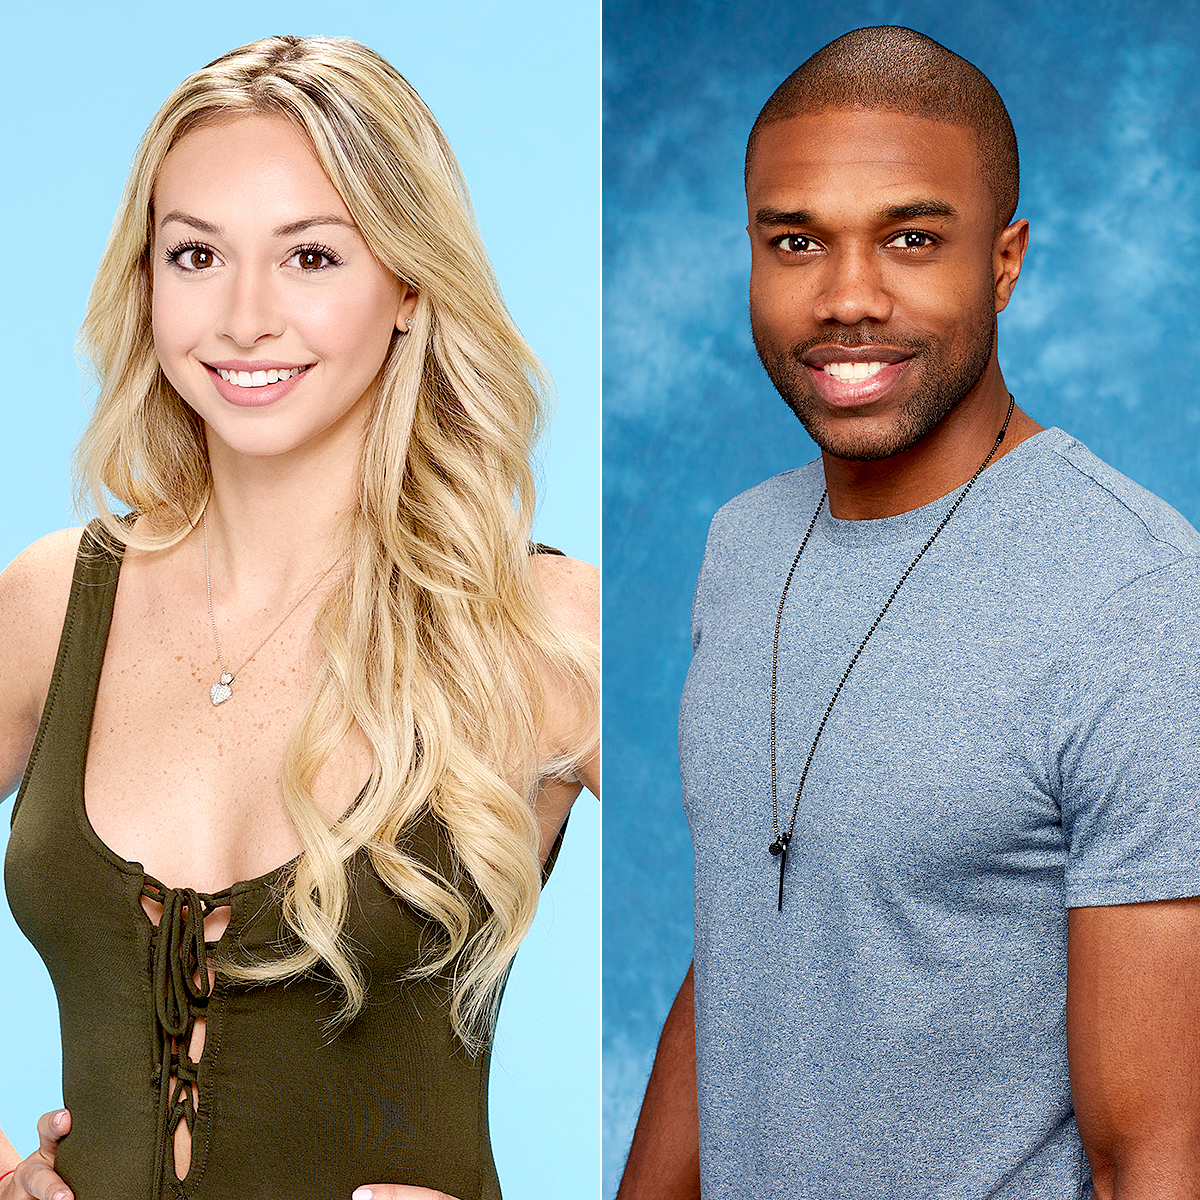 Corinne Olympios and DeMario Jackson